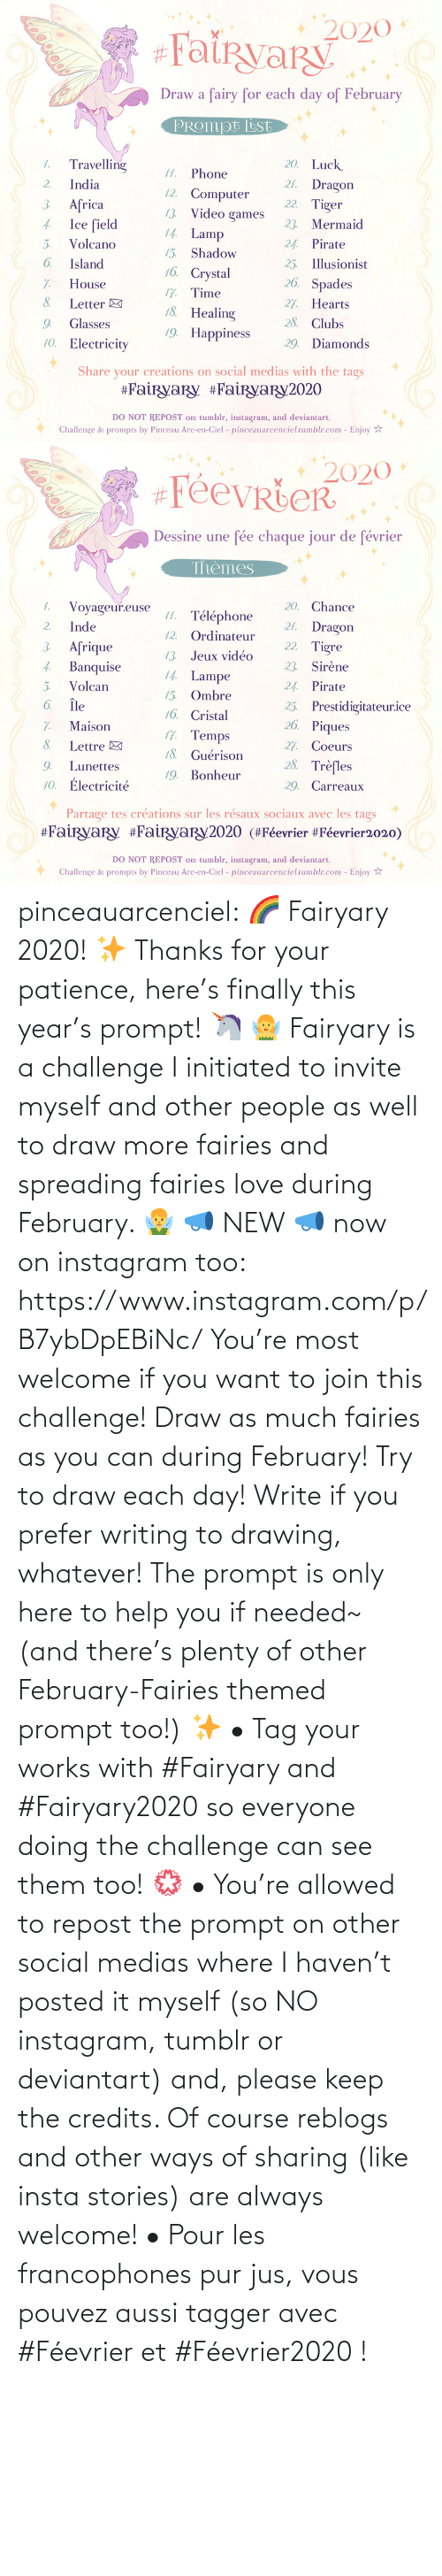 Join: pinceauarcenciel: 🌈 Fairyary 2020! ✨ Thanks for your patience, here's finally this year's prompt! 🦄 🧚‍♀️ Fairyary is a challenge I initiated to invite myself and other people as well to draw more fairies and spreading fairies love during February. 🧚‍♂️ 📣 NEW 📣 now on instagram too: https://www.instagram.com/p/B7ybDpEBiNc/ You're most welcome if you want to join this challenge! Draw as much fairies as you can during February! Try to draw each day! Write if you prefer writing to drawing, whatever! The prompt is only here to help you if needed~ (and there's plenty of other February-Fairies themed prompt too!) ✨ • Tag your works with #Fairyary and #Fairyary2020 so everyone doing the challenge can see them too! 💮 • You're allowed to repost the prompt on other social medias where I haven't posted it myself (so NO instagram, tumblr or deviantart) and, please keep the credits. Of course reblogs and other ways of sharing (like insta stories) are always welcome!